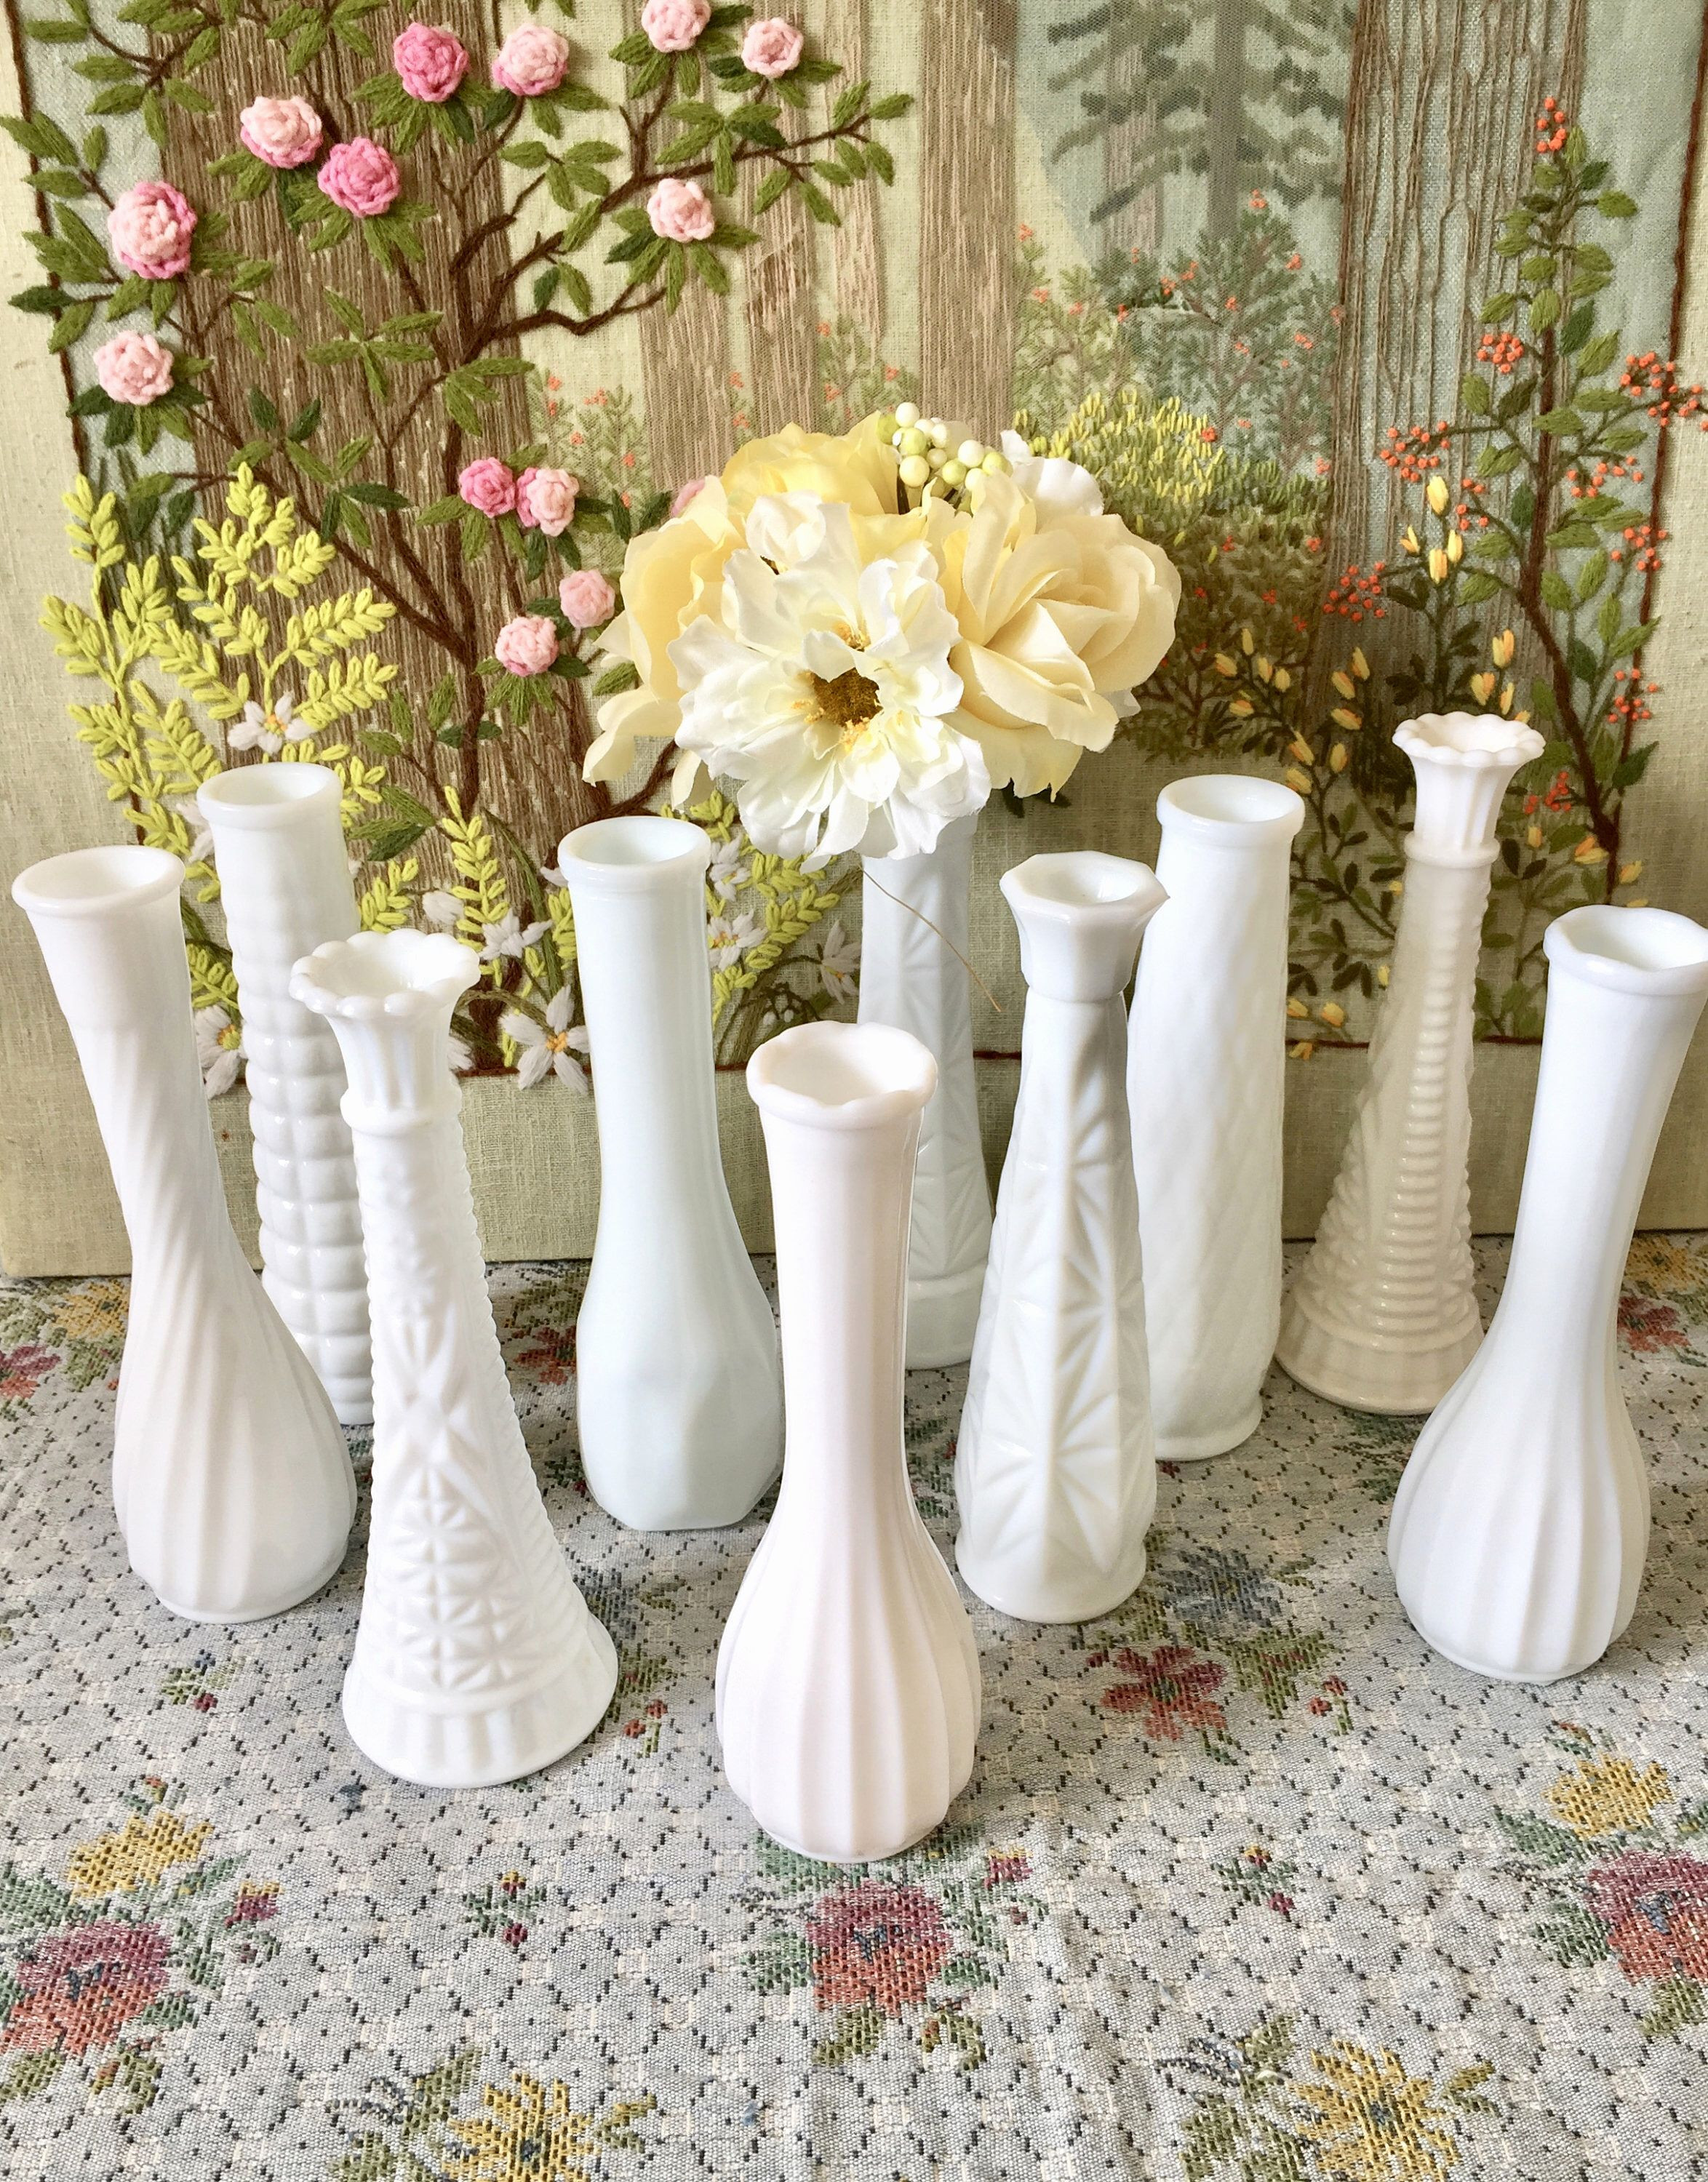 white flower vases bulk of 40 glass vases bulk the weekly world regarding centerpiece vases in bulk vase and cellar image avorcor